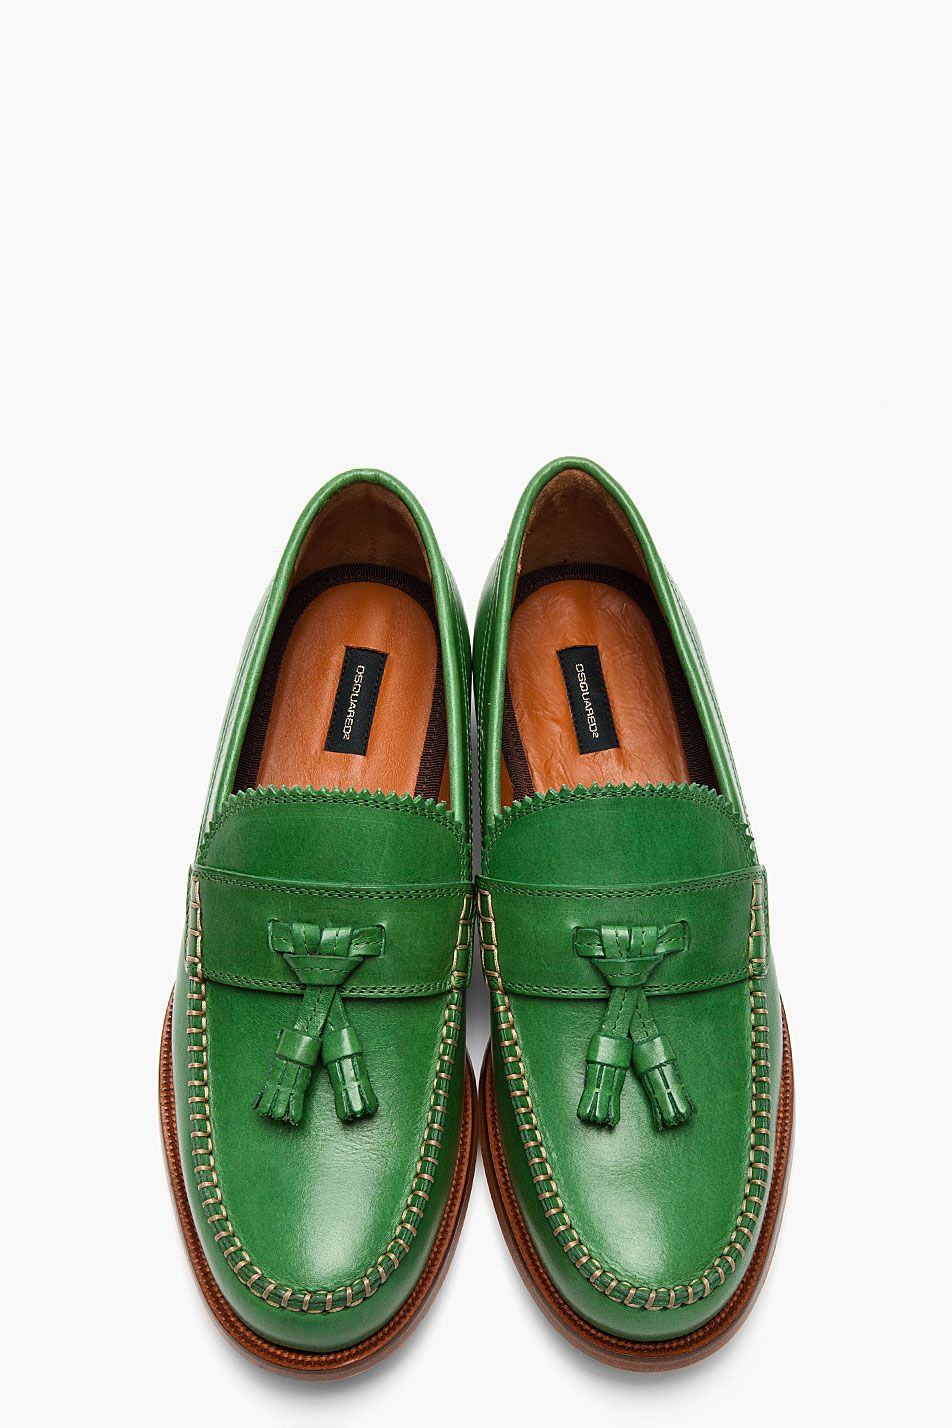 26f5fa80275 Dsquared2 Green Leather Classic College Tassled Penny Loafers in Green for  Men.